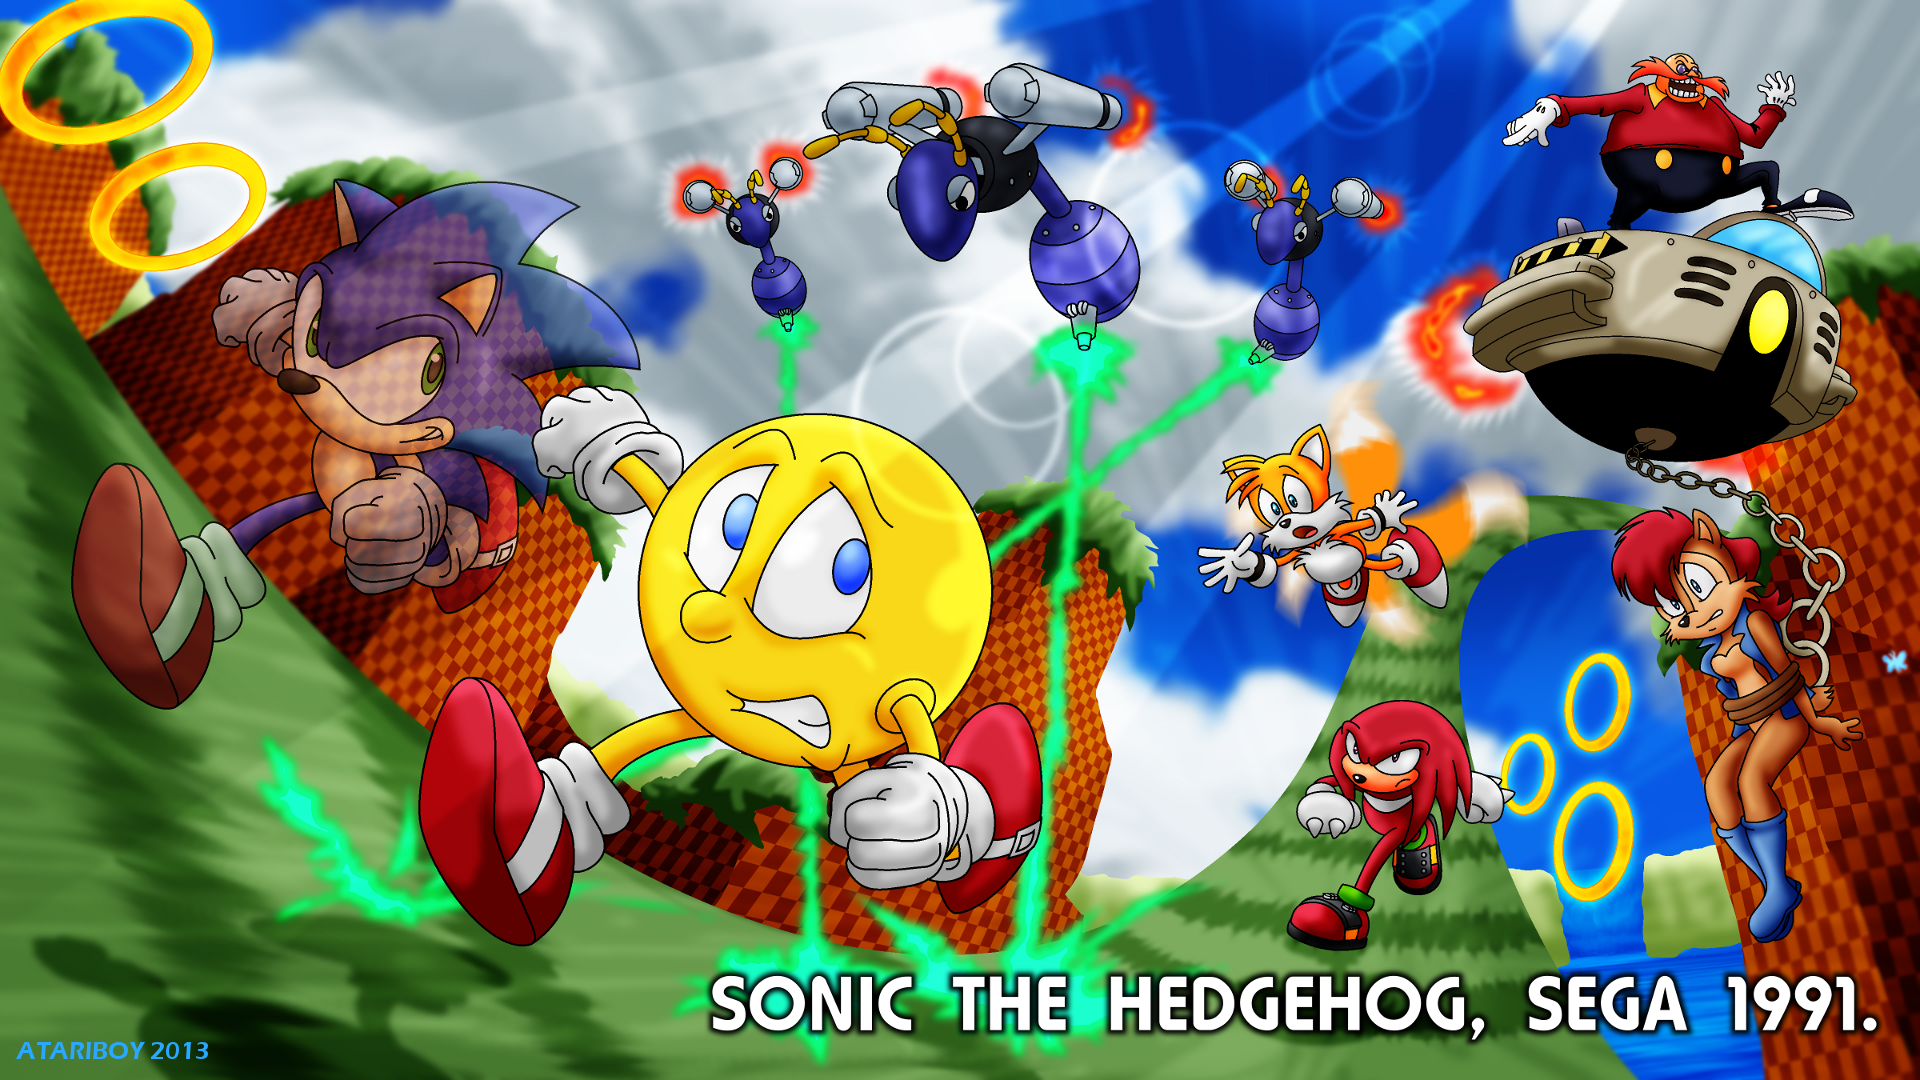 Pacman Fanfic Sonic The Hedgehog 1991 By Atariboy2600 On Deviantart